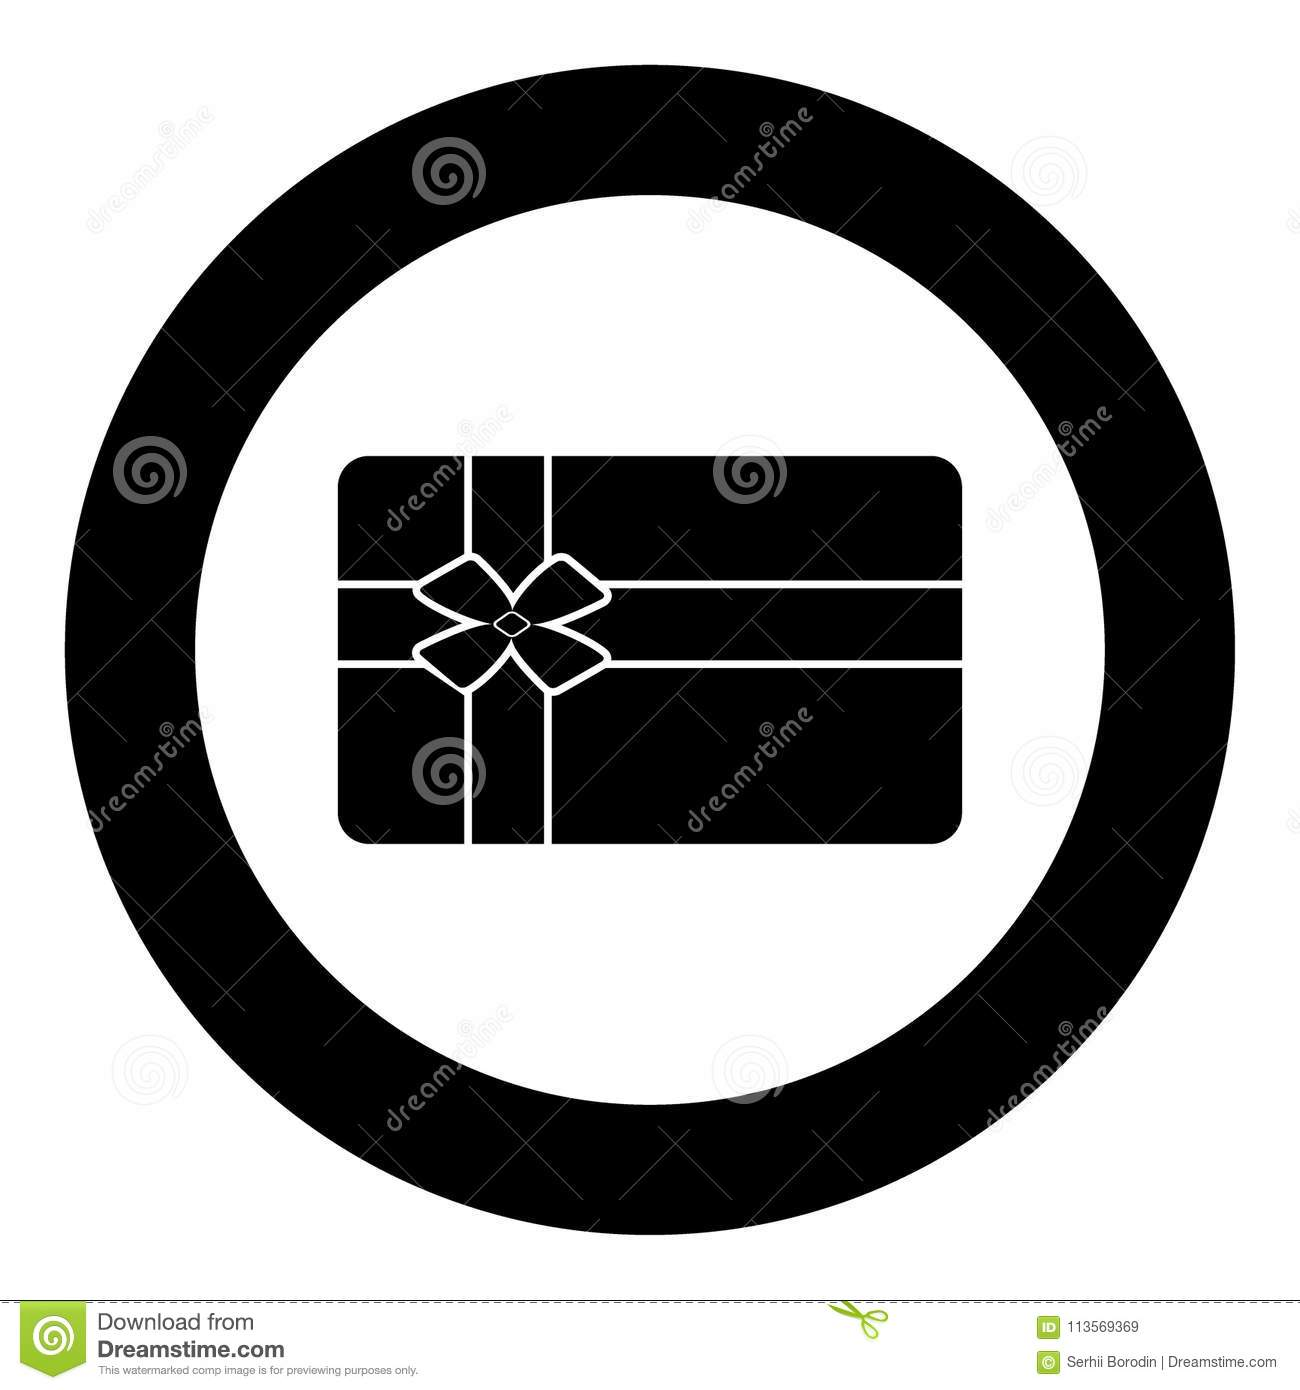 Gift Card Black Icon In Circle Stock Vector - Illustration ...